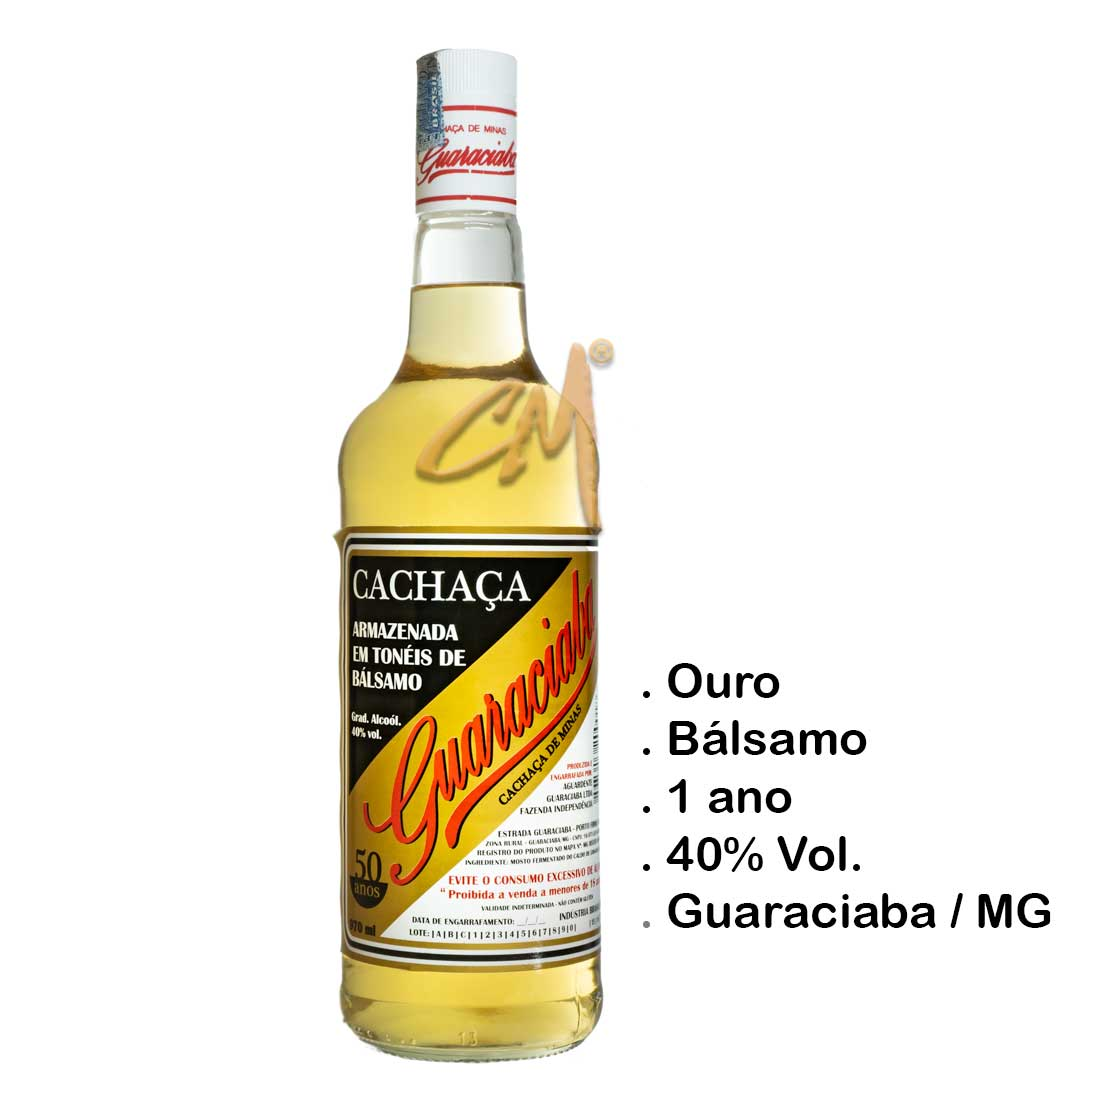 Cachaça Guaraciaba Ouro 970 ml (Guaraciaba - MG)